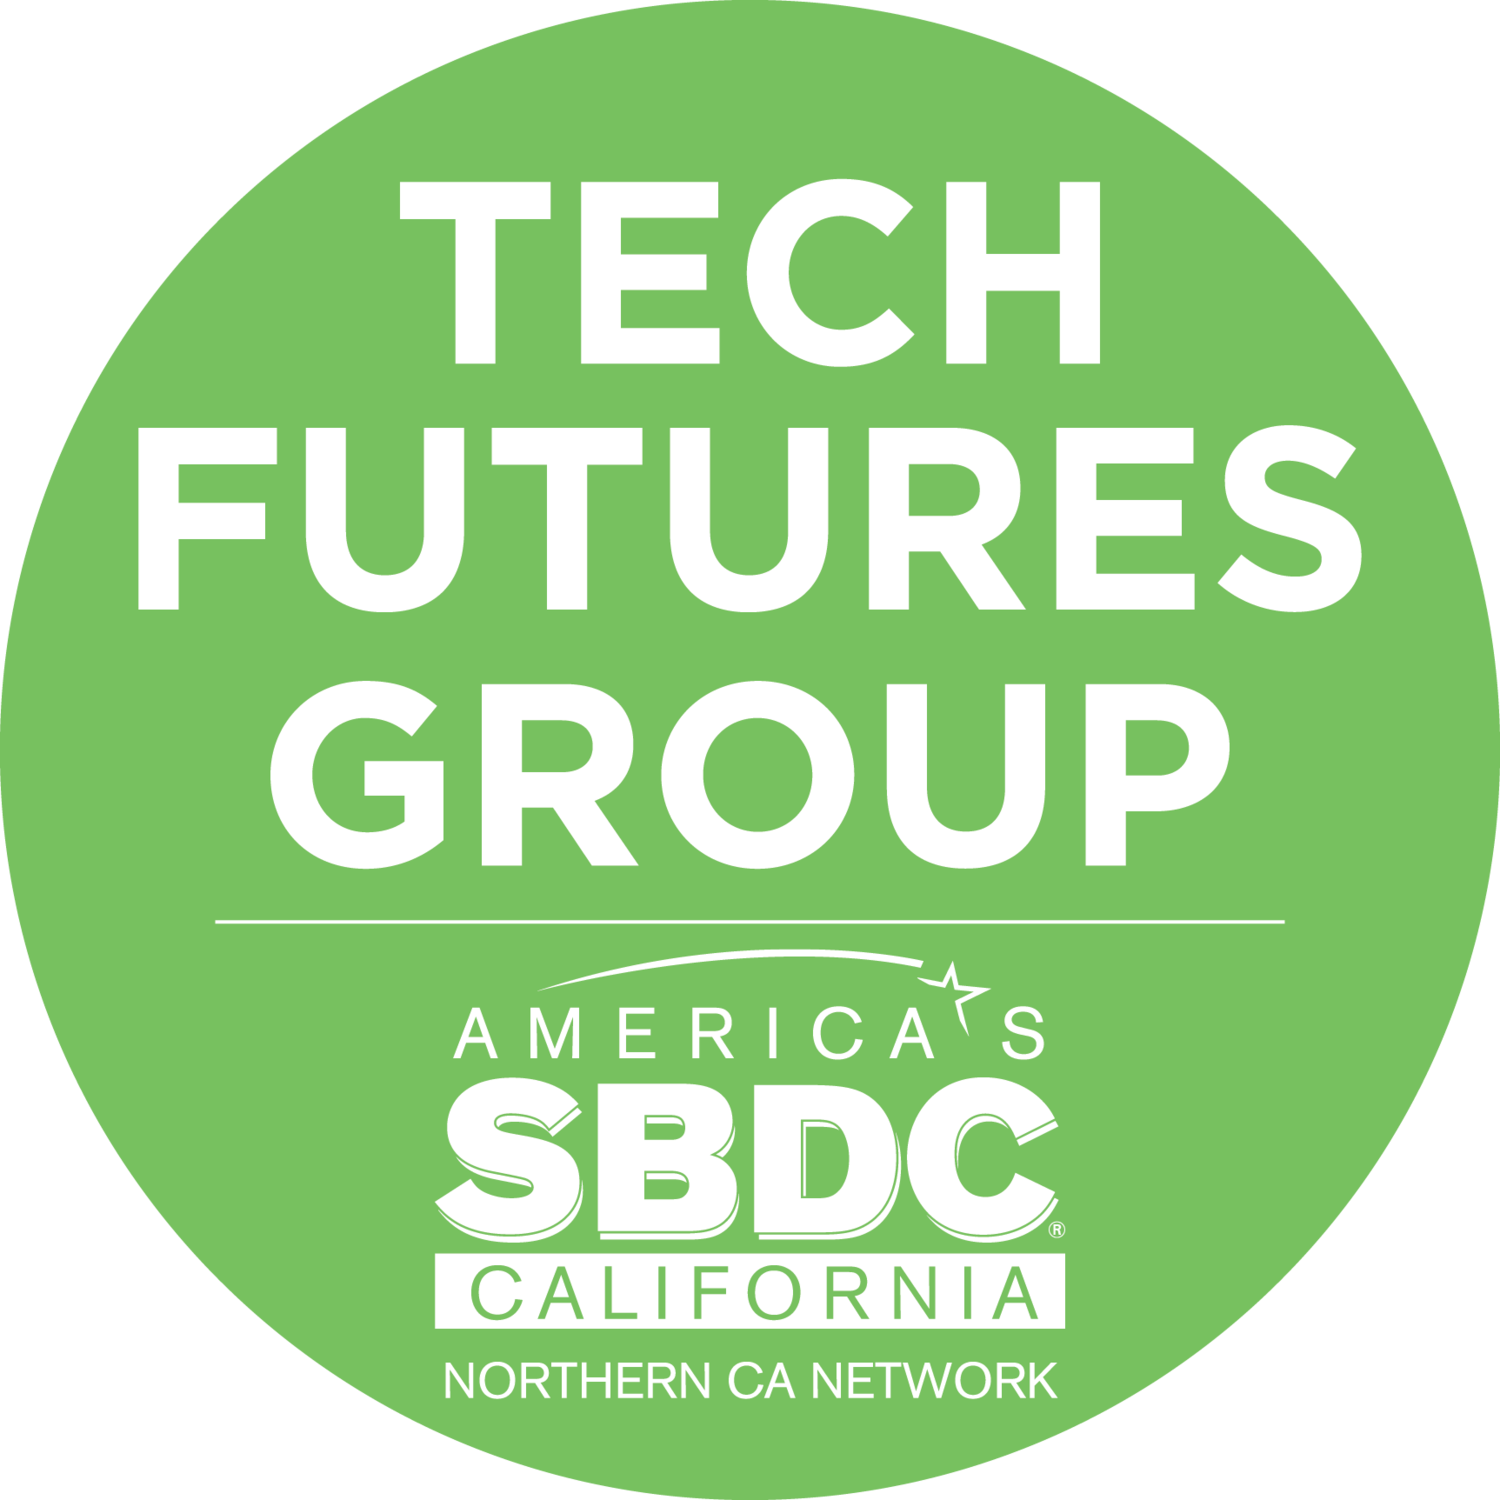 Tech Futures Group - The 100% Free, Advisory Board for Tech Companies